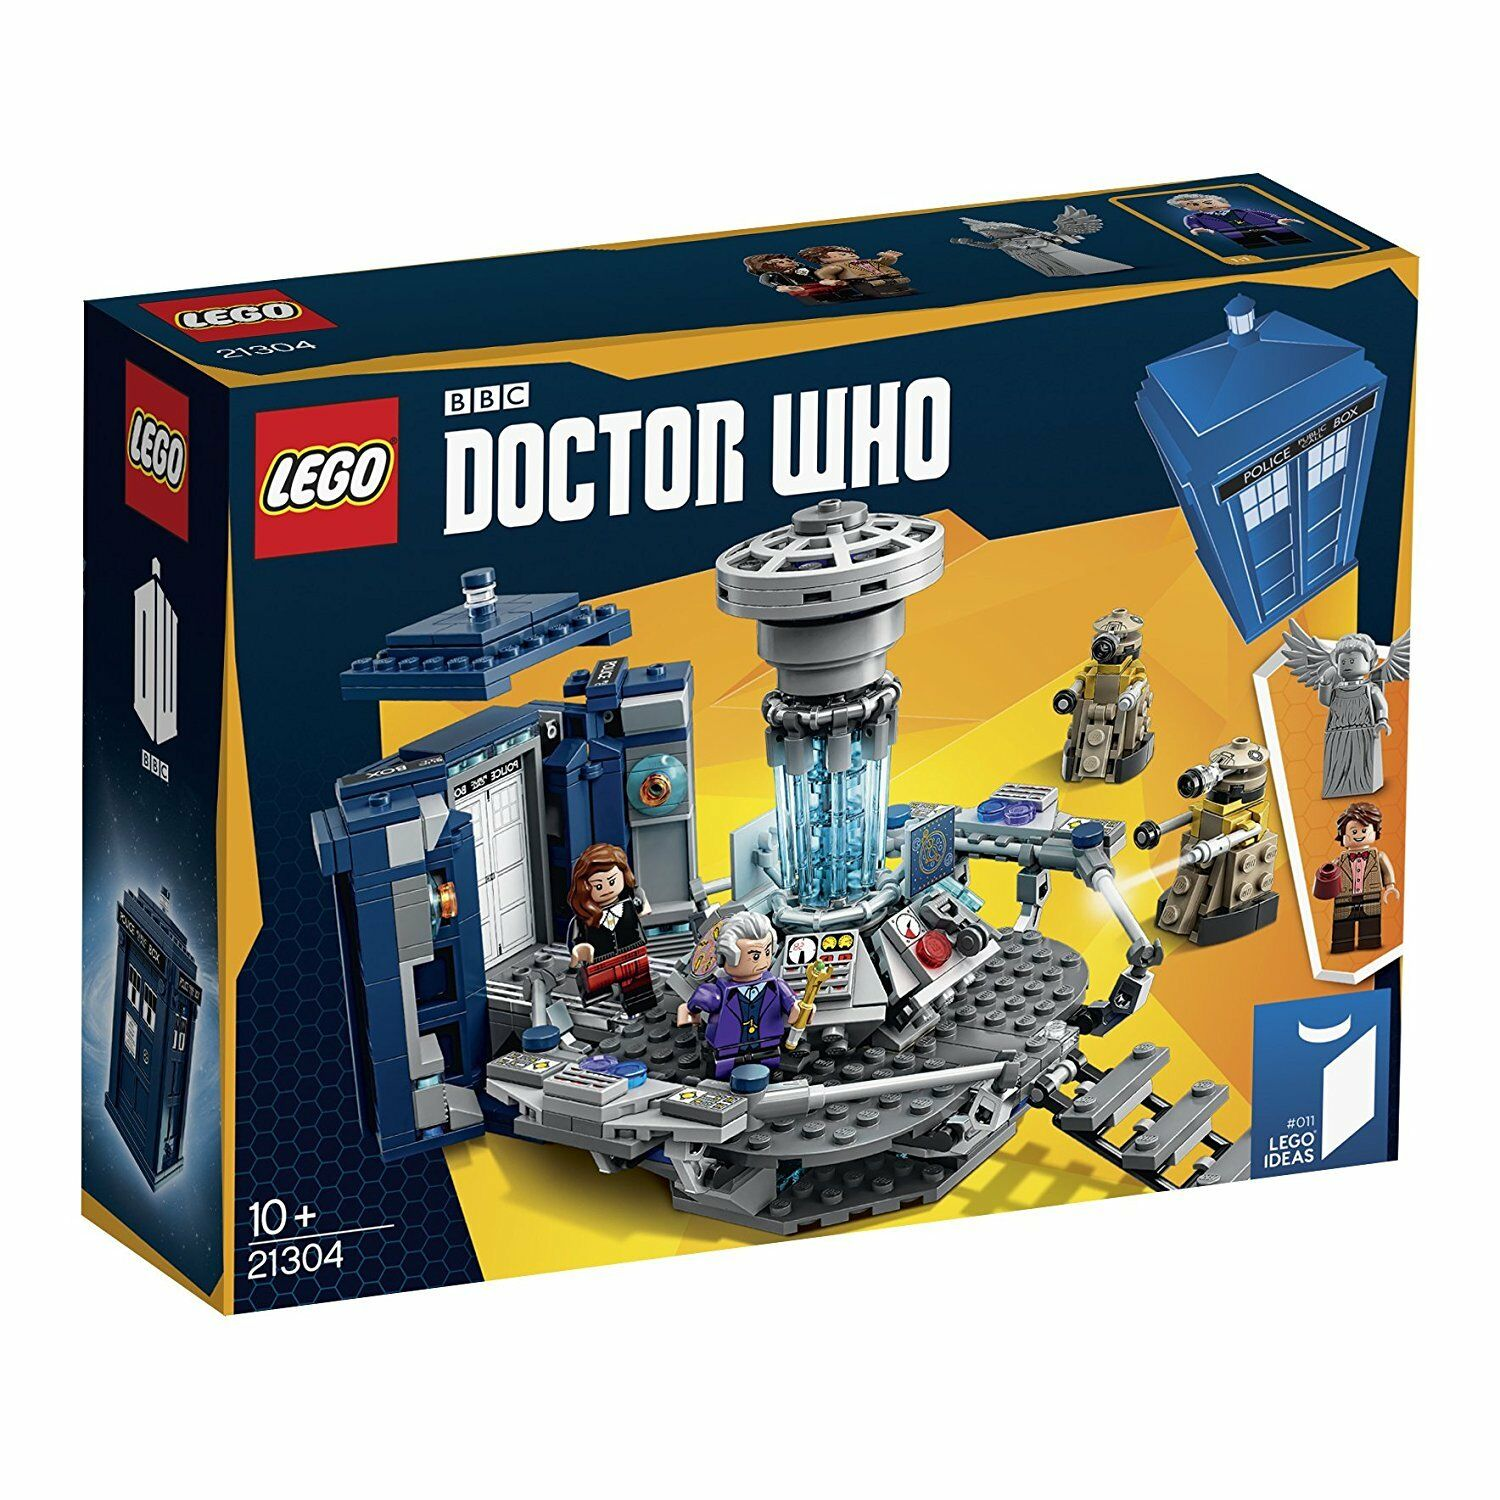 Lego Ideas Doctor Who  BRAND NEW FACTORY SEALED BBC Dr.Who